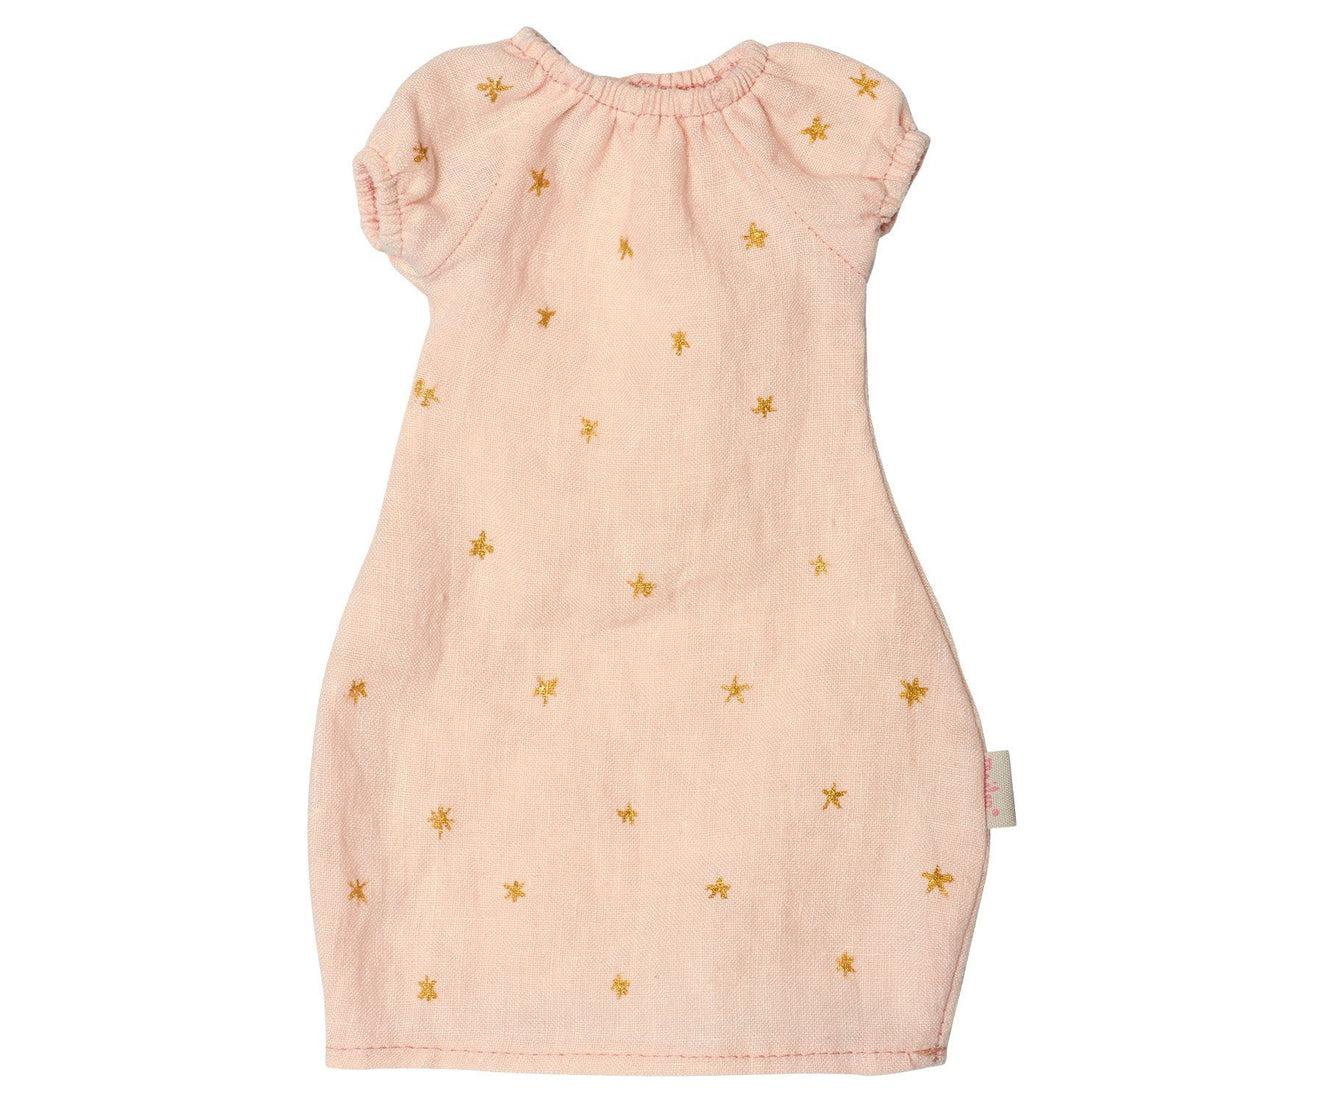 Best Friends Dress Up Set- Rose Star Dress